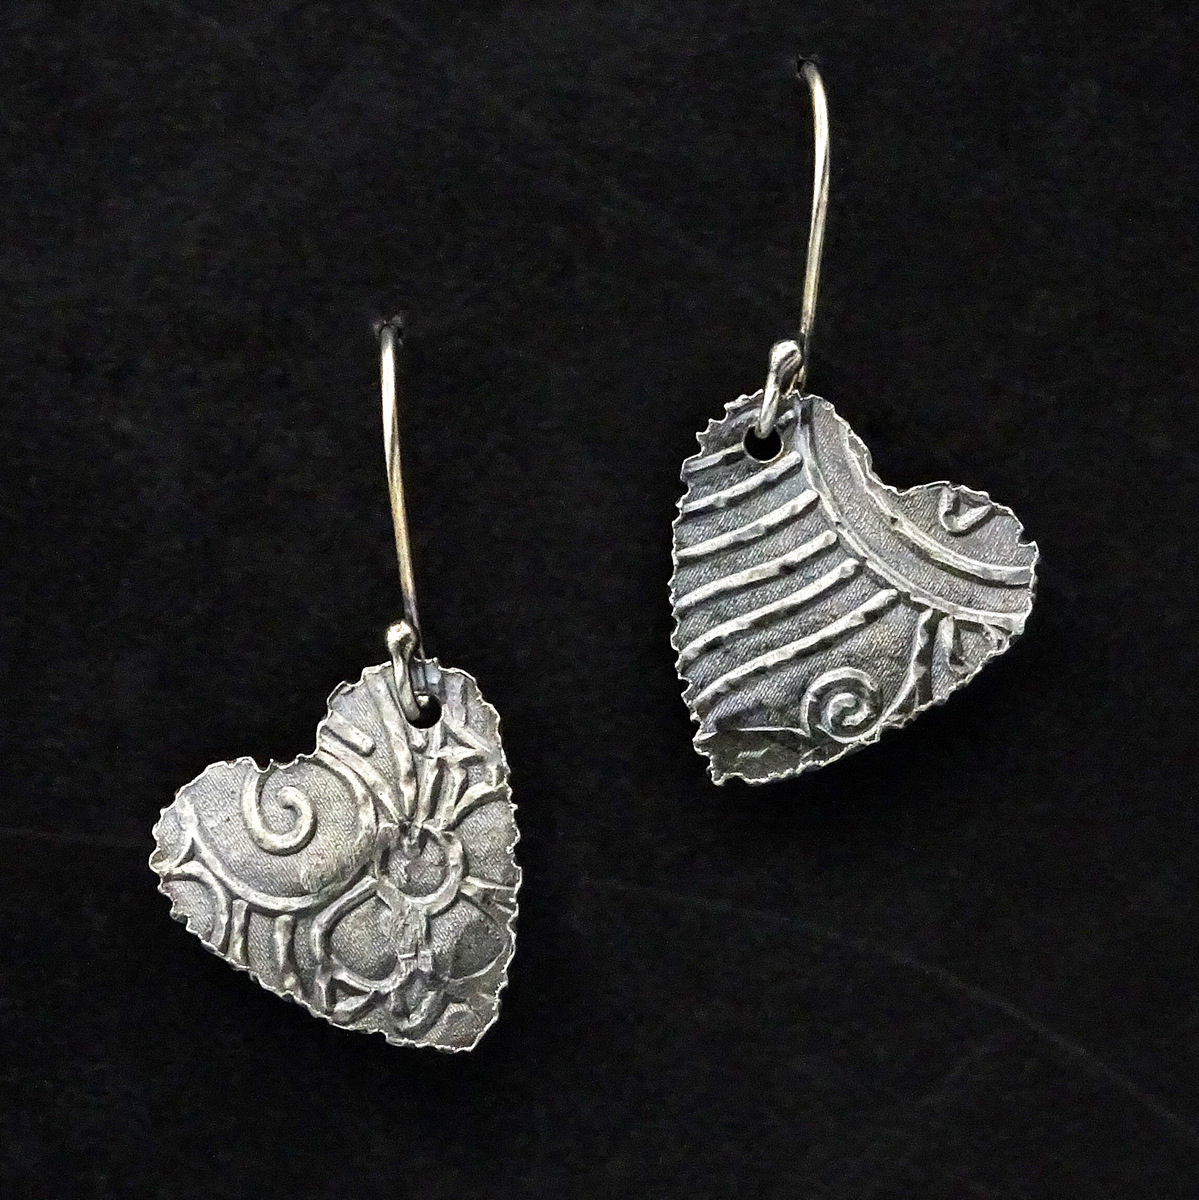 EMBOSSED HEARTS EARRINGS,  Silver Ear Wires,  .75 x .8 inches - 1.5 inches drop length